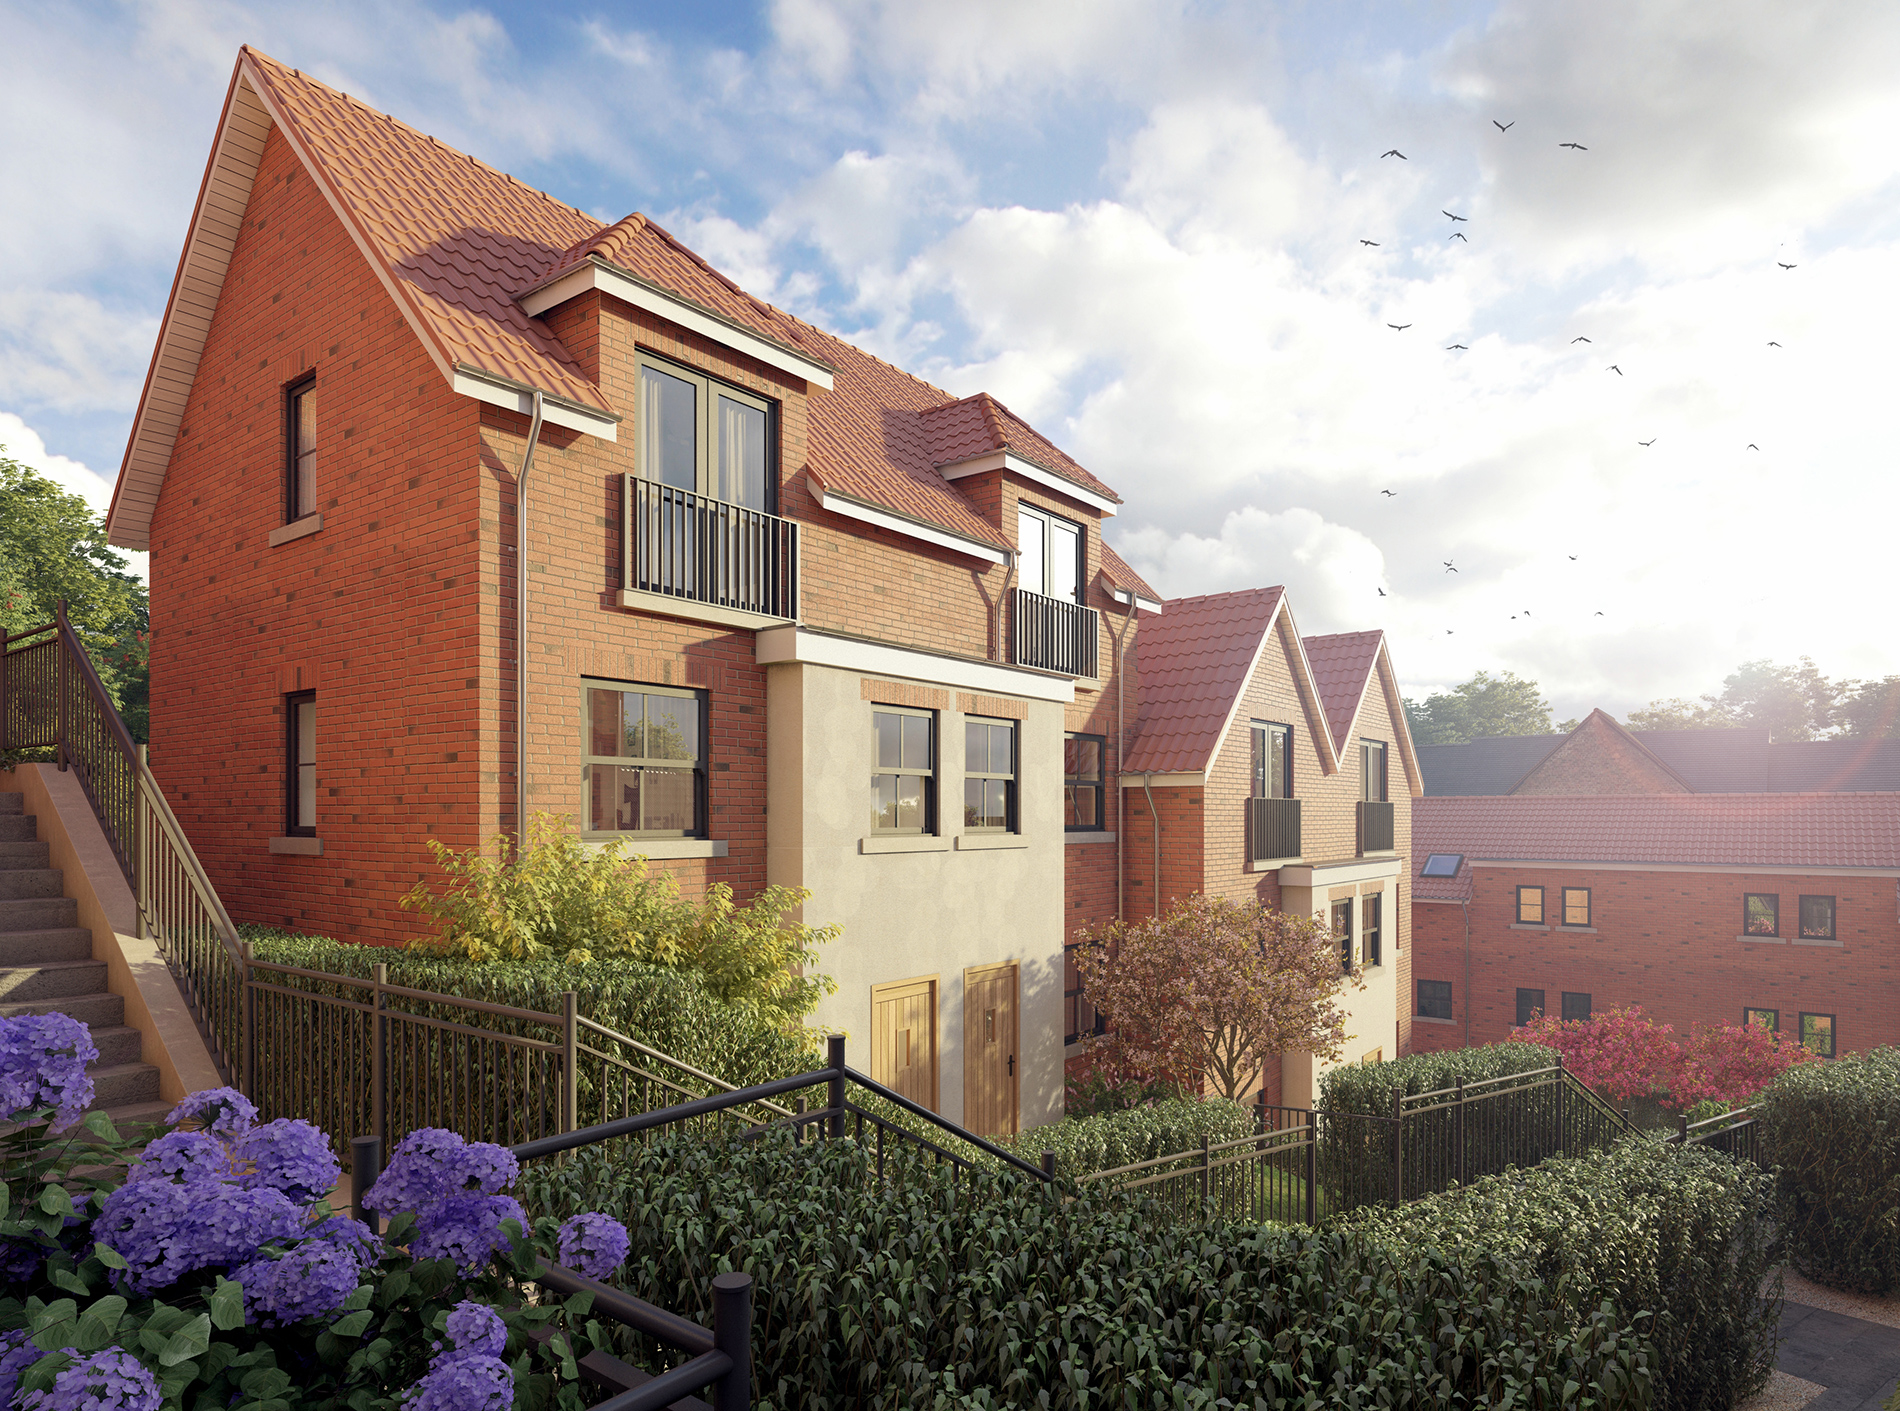 Spa Well Court, Whitby Housing 1